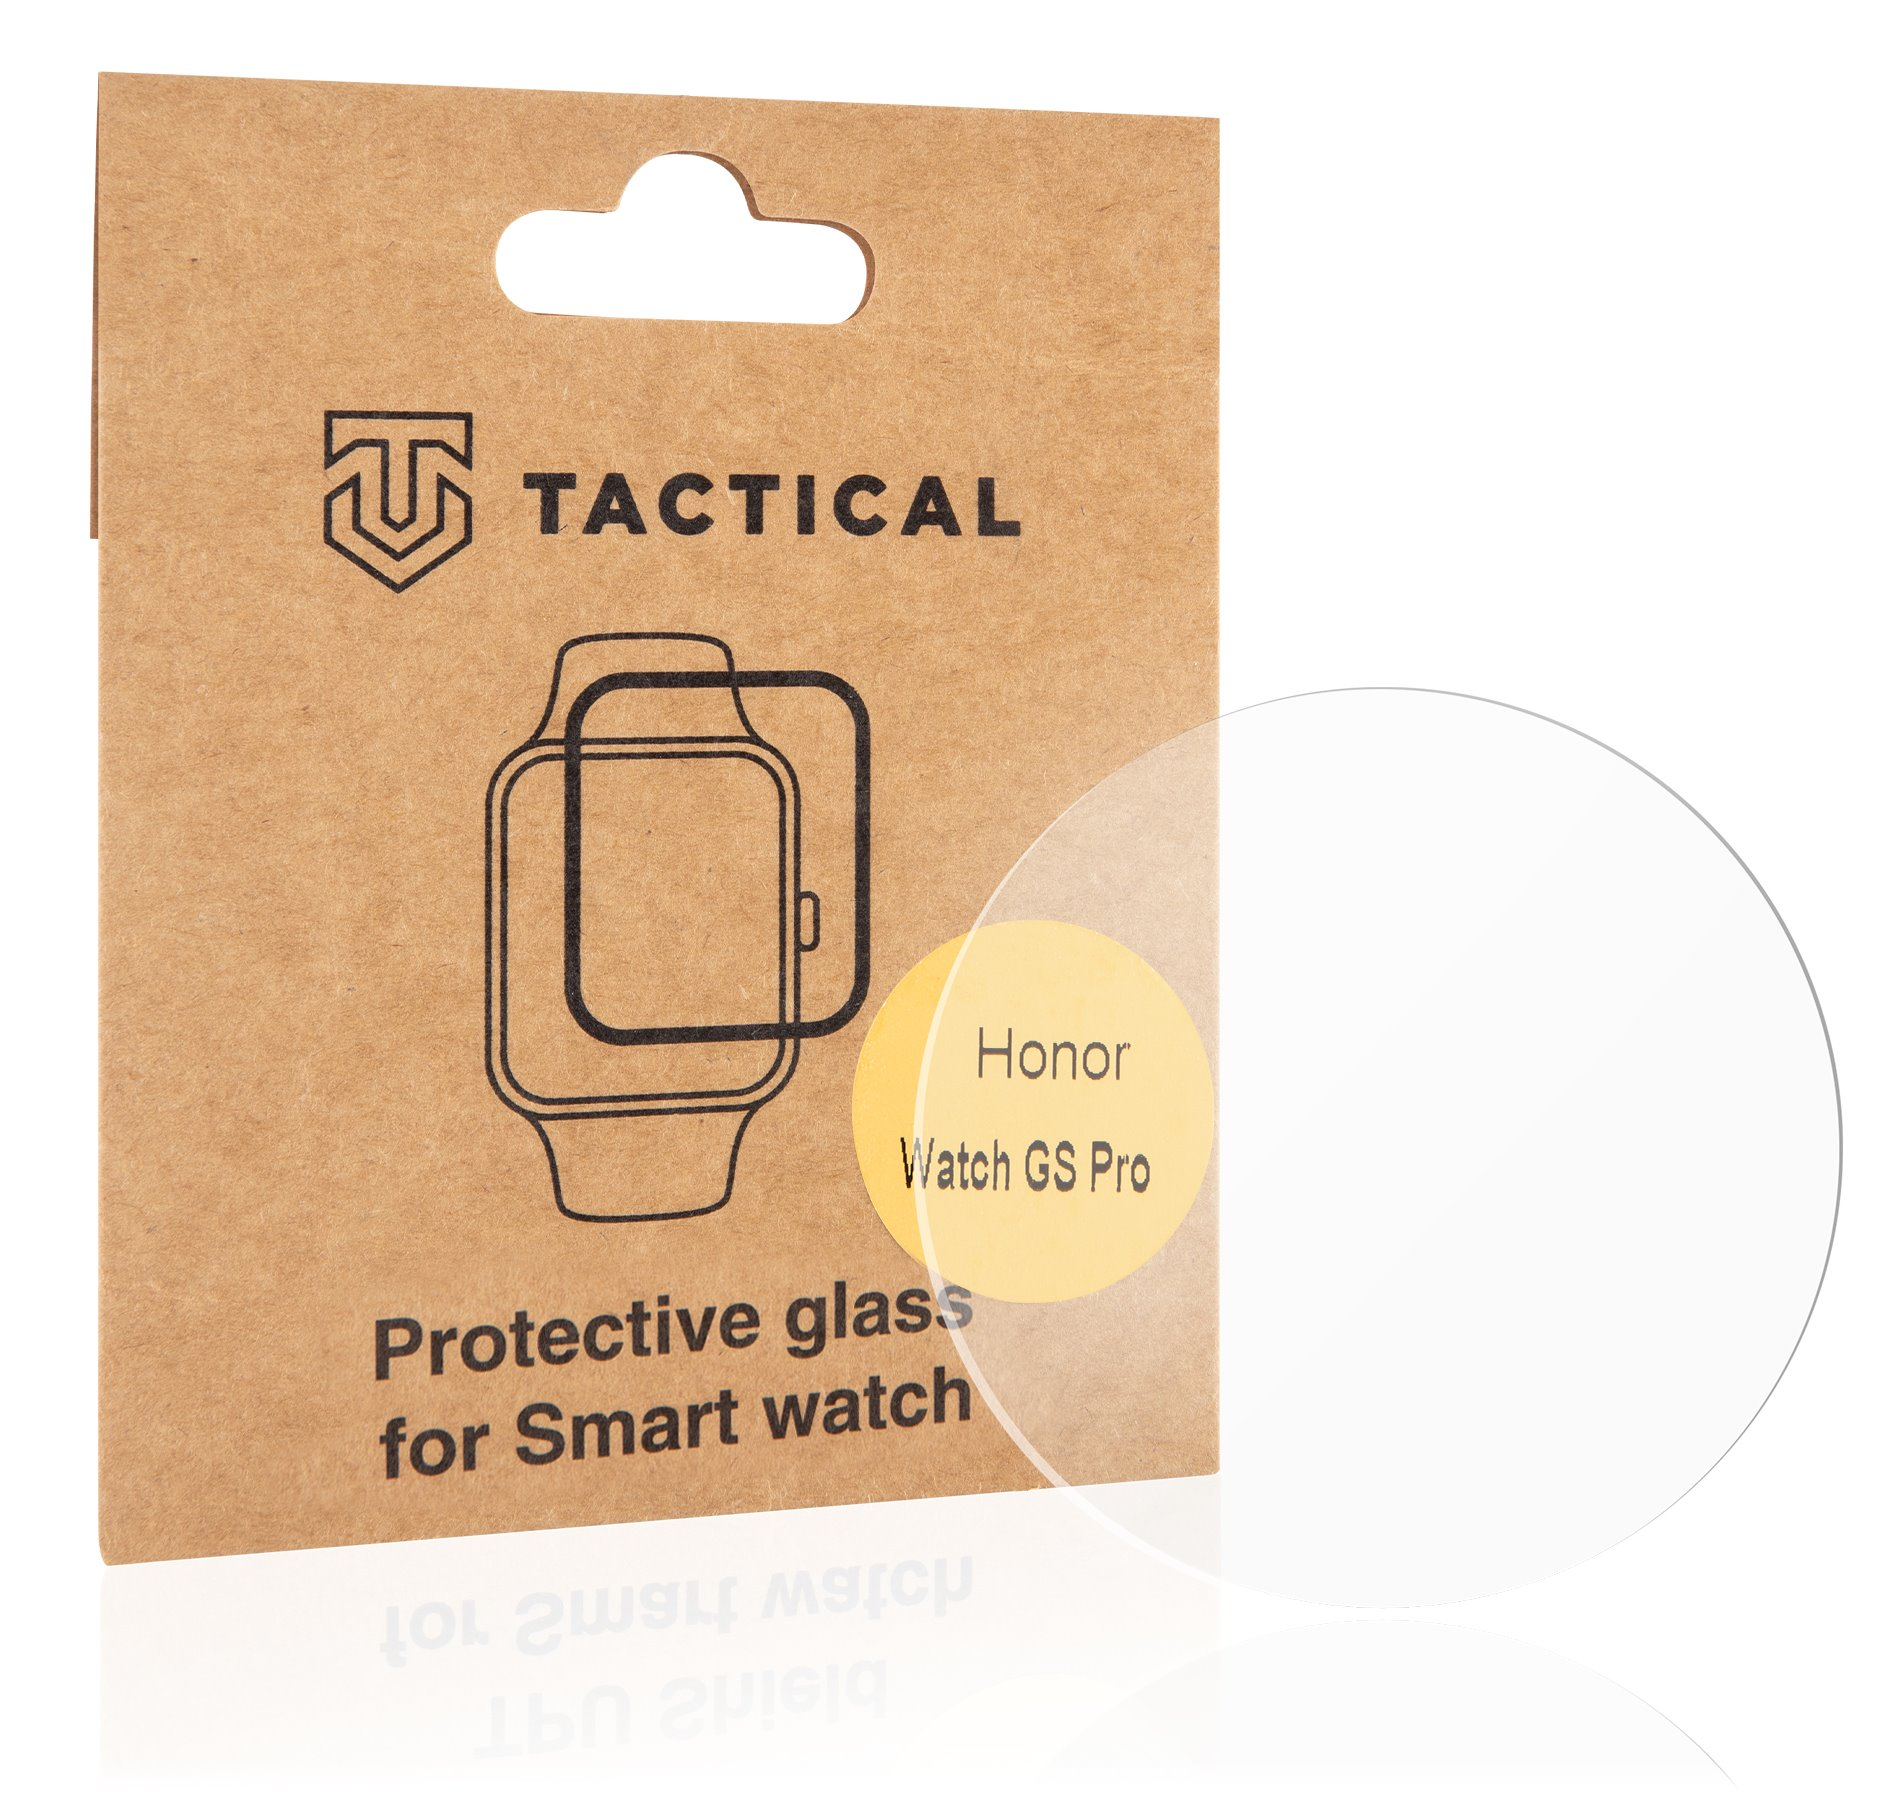 Tactical Glass Shield sklo pro Honor Watch GS Pro 8596311130182